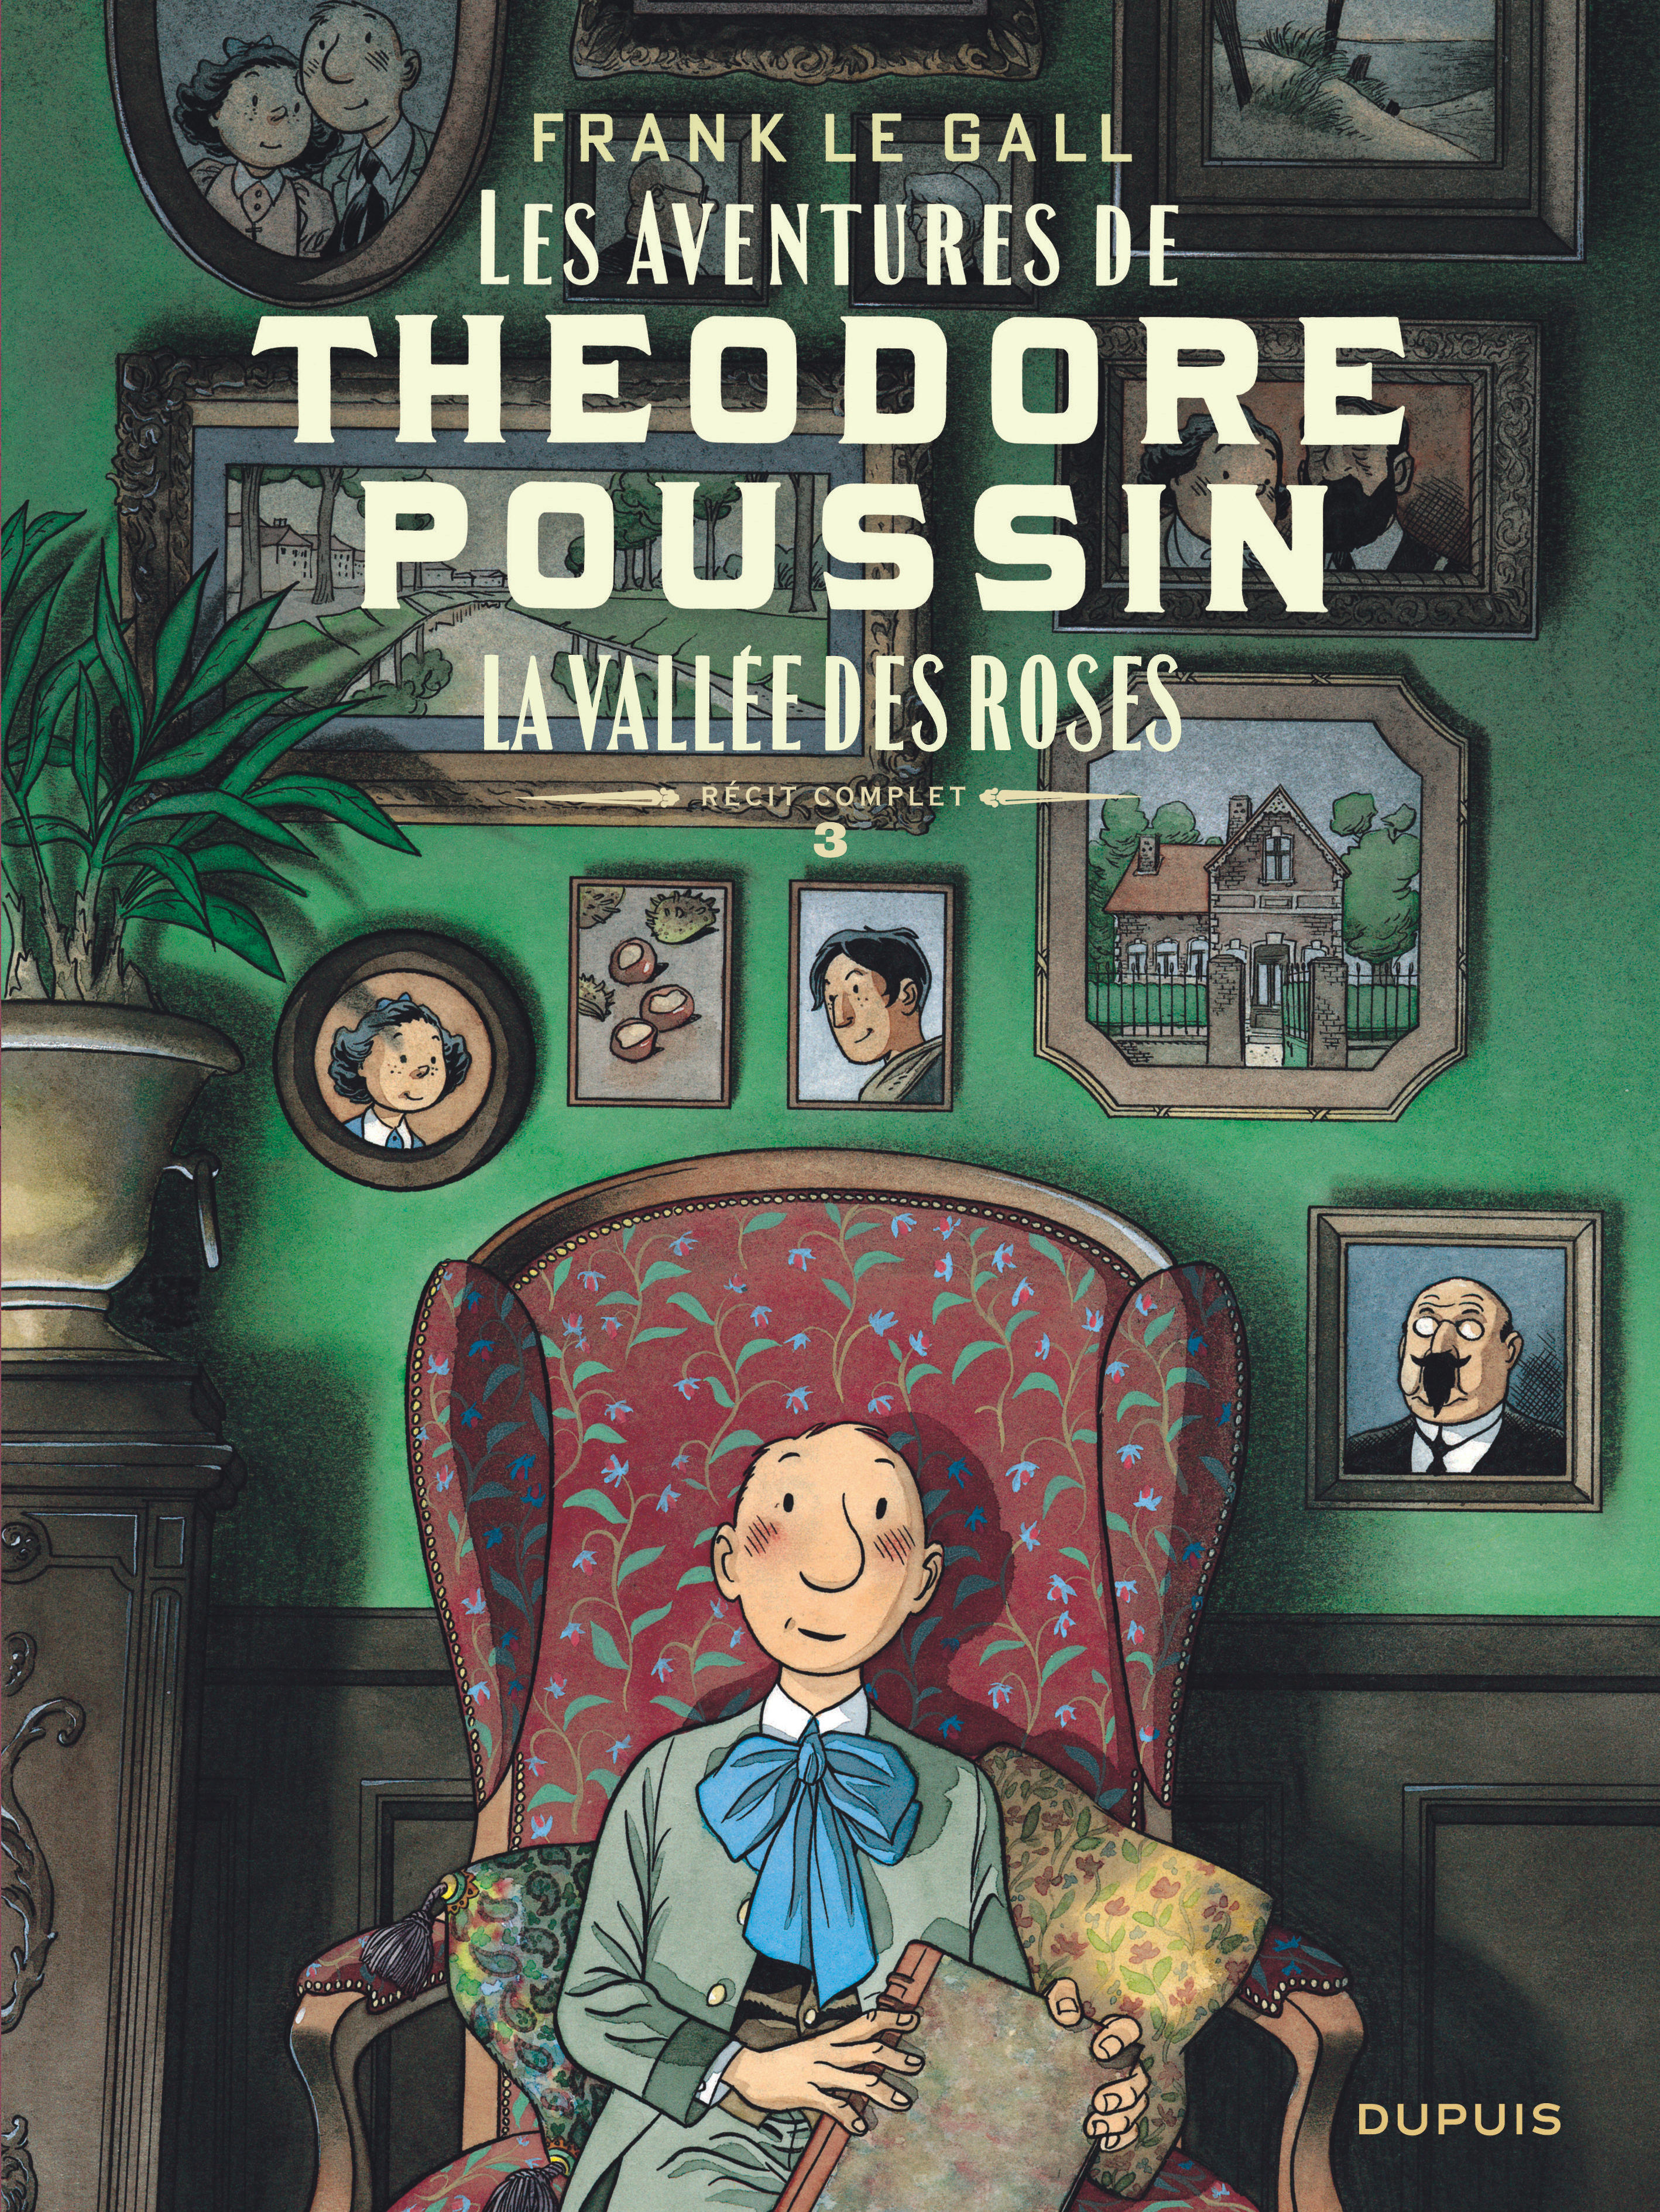 THEODORE POUSSIN  RECITS COMP - THEODORE POUSSIN  RECITS COMPLETS - TOME 3 - LA VALLEE DES ROSES